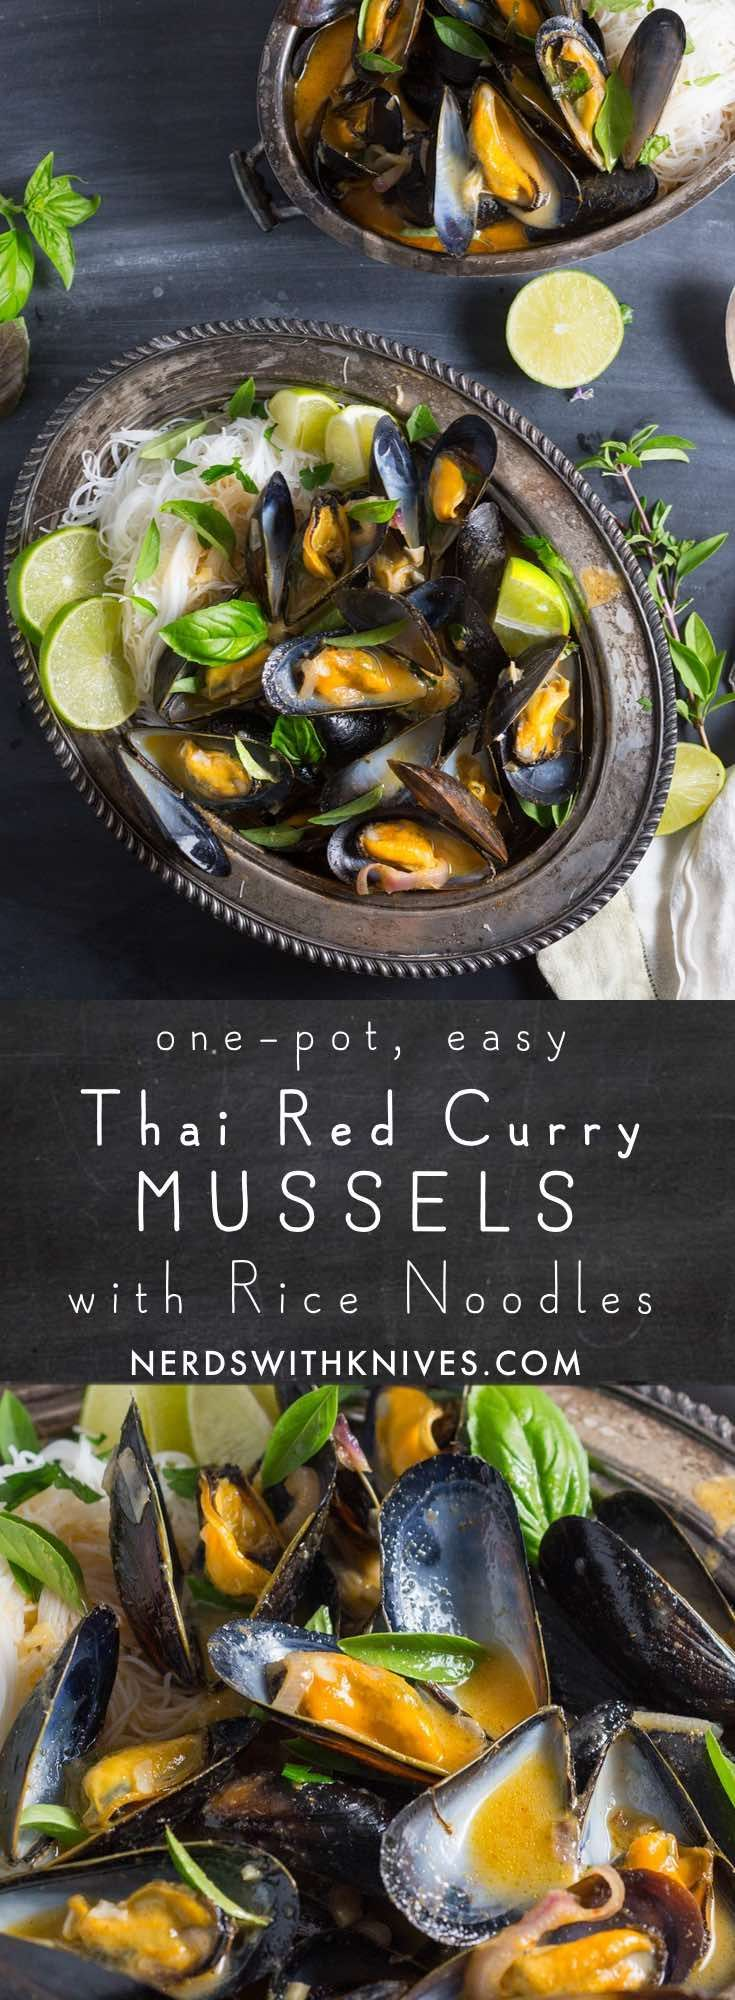 We spiced up our one-pot mussels with Thai curry sauce to make this red curry mussels recipe. It's cheap, it's delicious, and best of all, it's ready in 20 minutes!